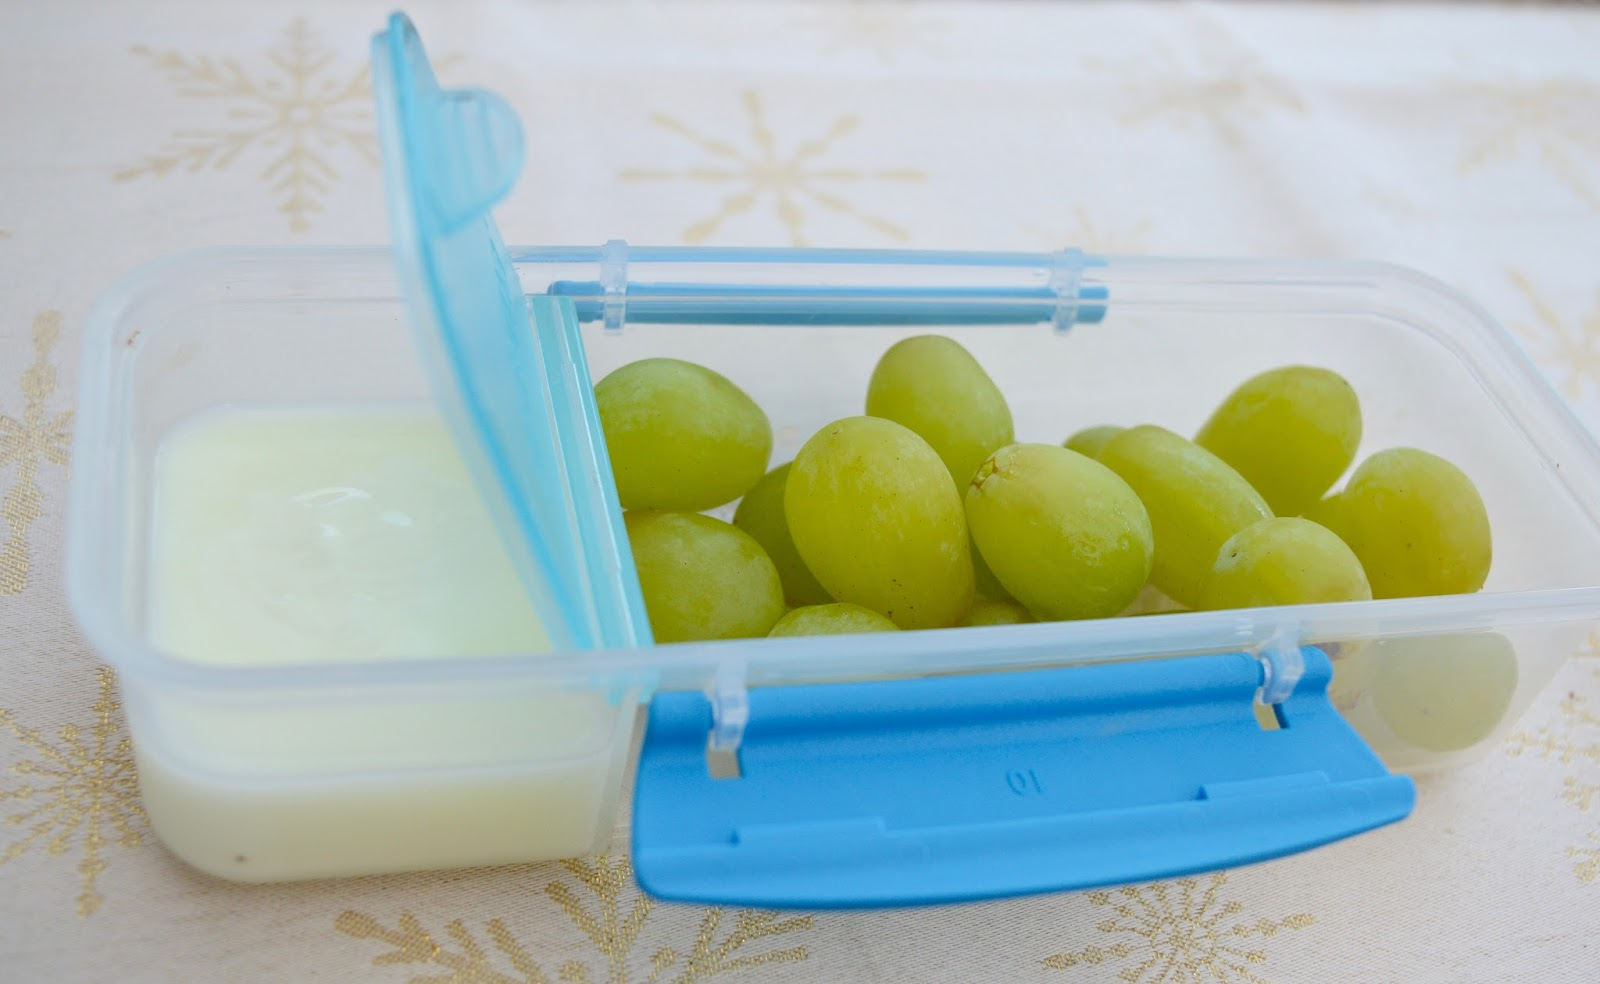 5 ways to add fruit & veg to your child's lunchbox and help them reach 5-a-day - grapes and yoghurt dip